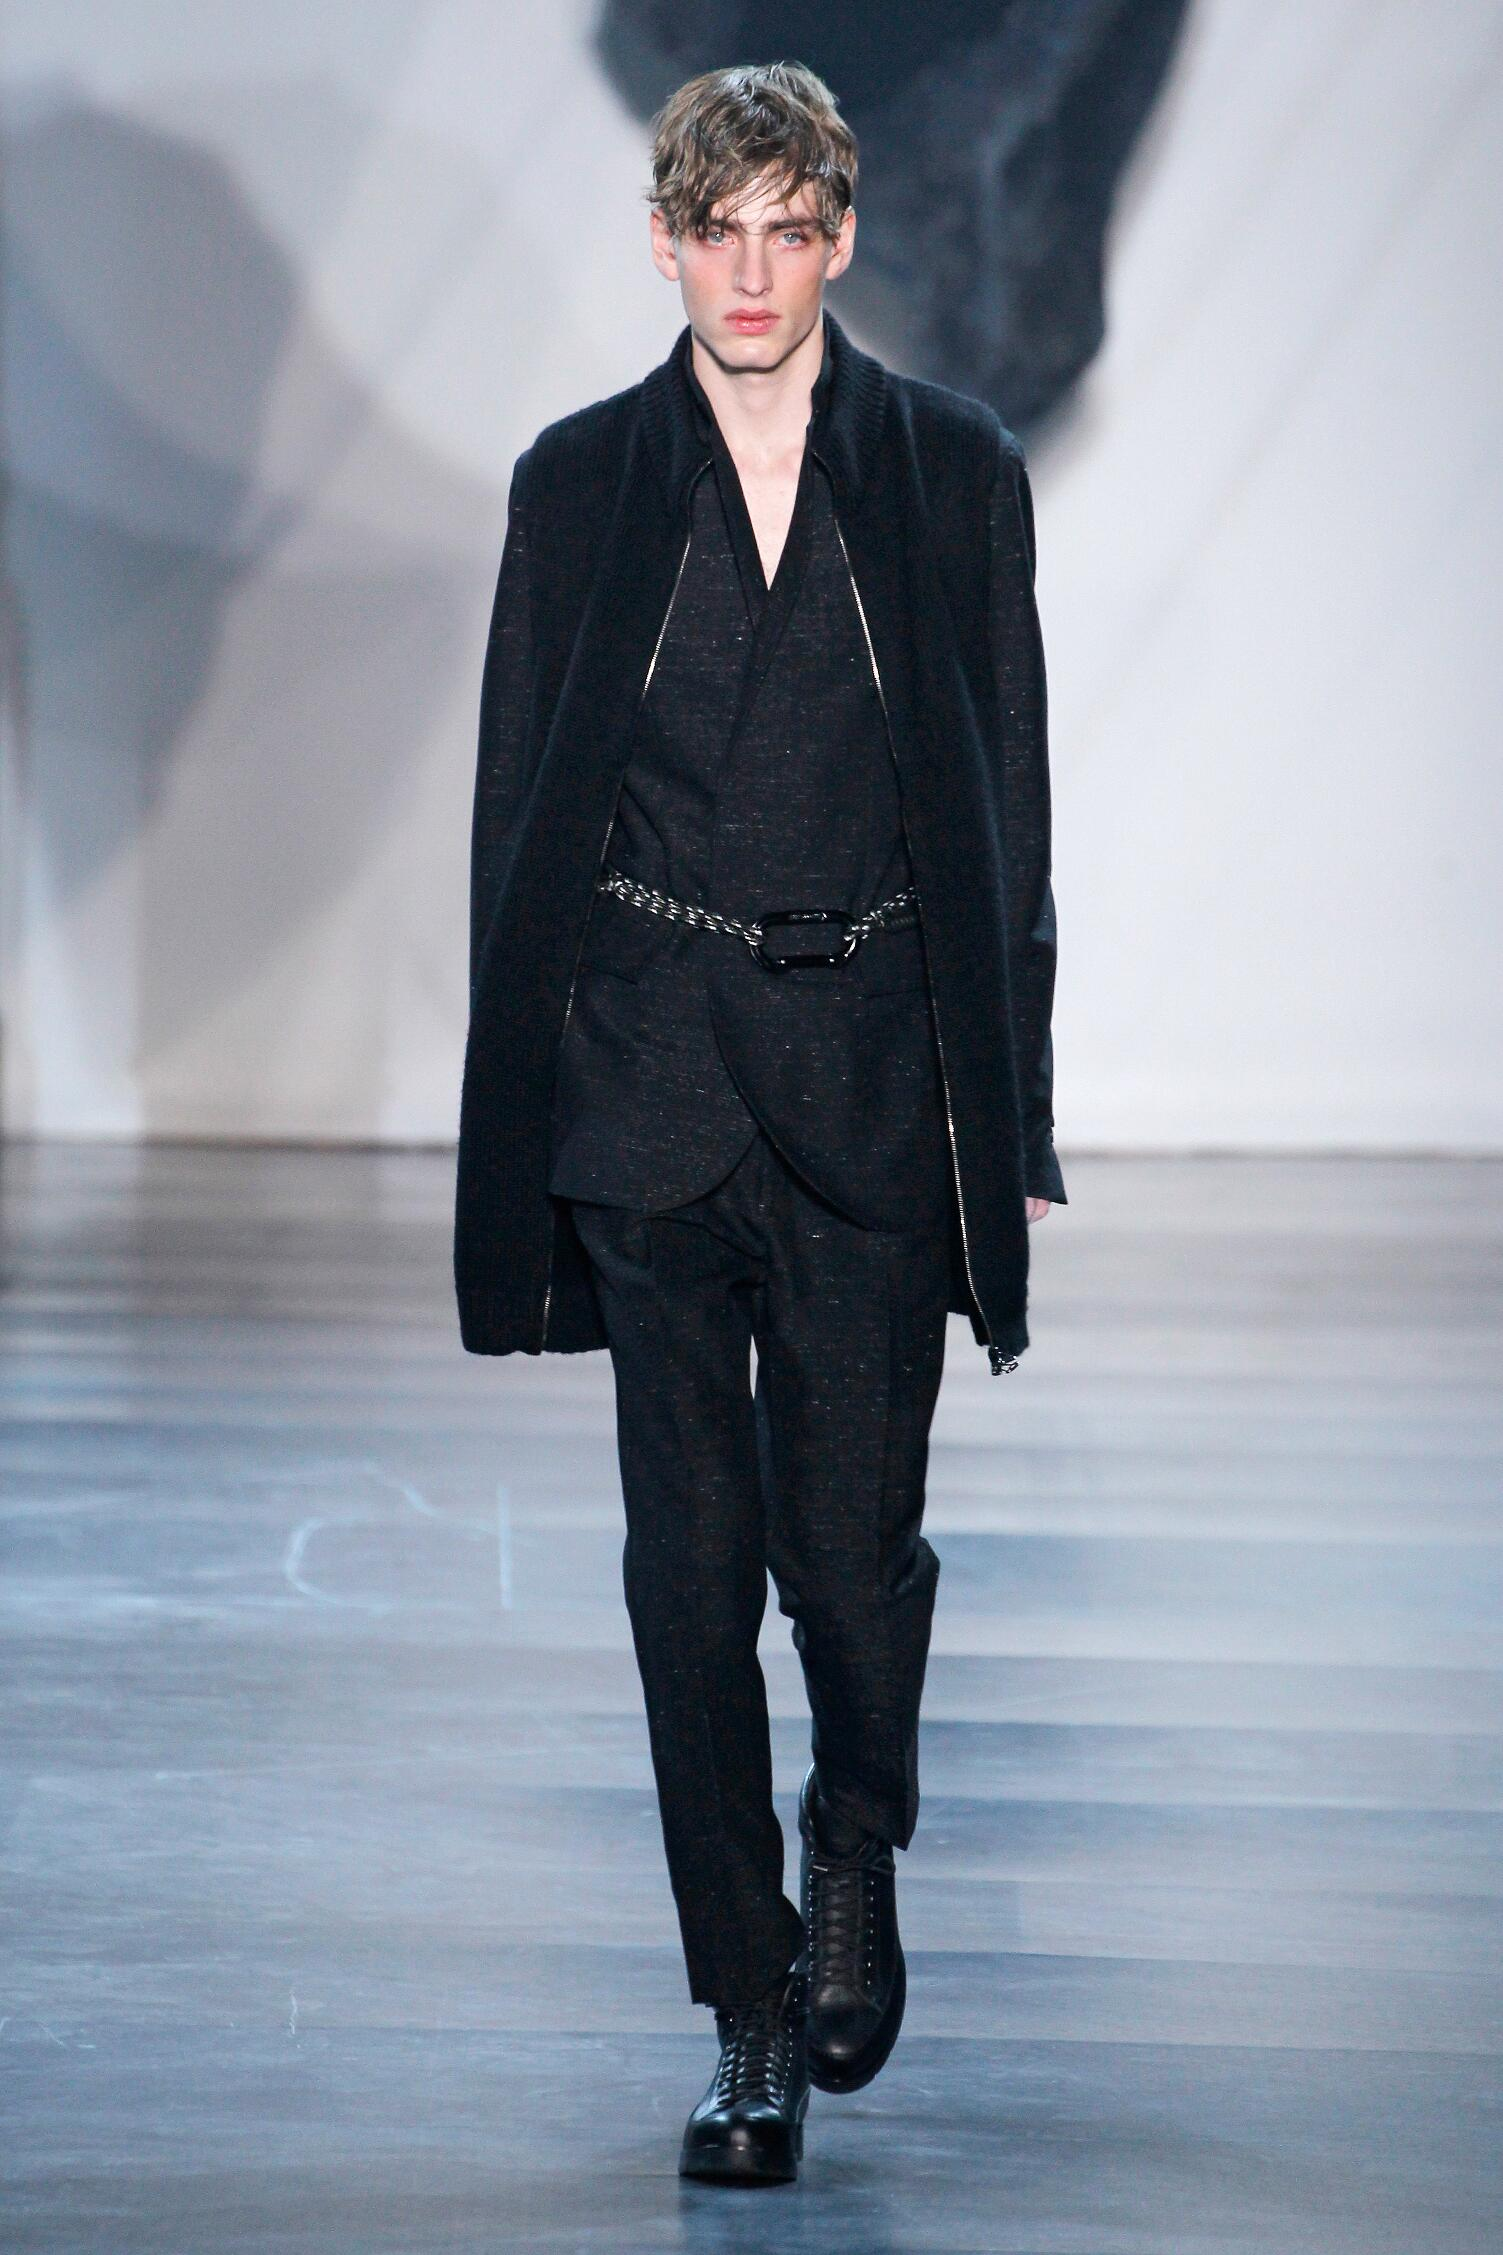 Fall Winter 2015 16 Fashion Collection 3.1 Phillip Lim